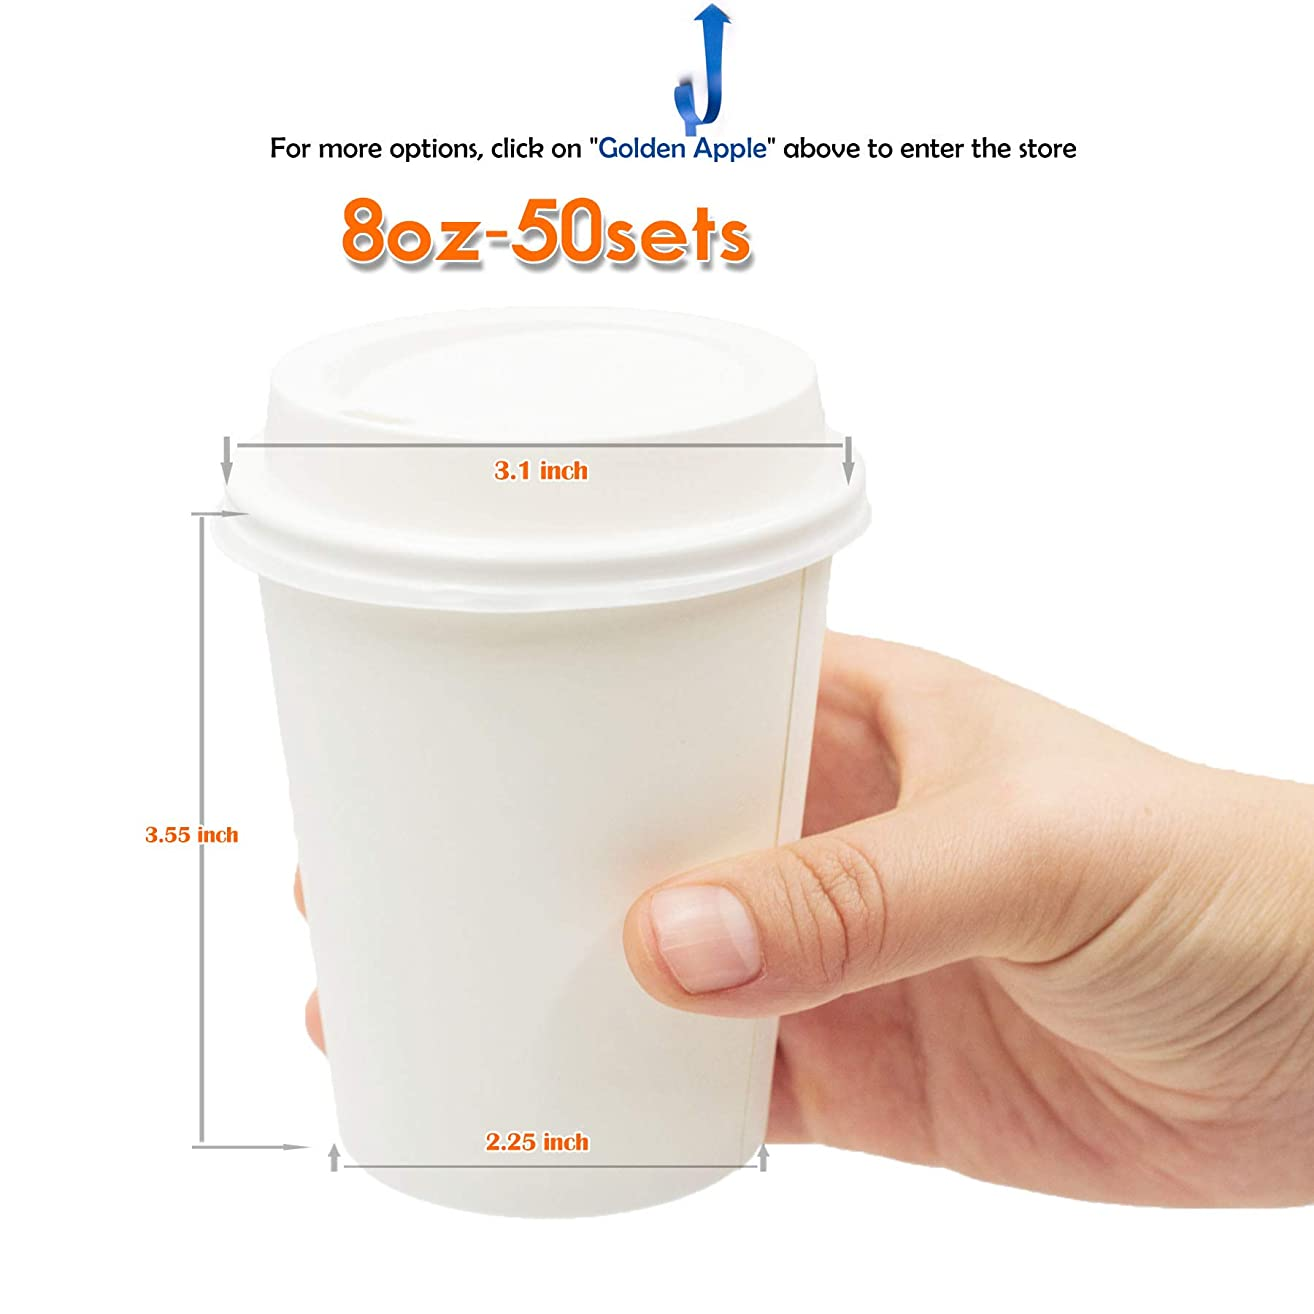 ?GOLDEN APPLE, Disposable Paper Coffee Cups 8 oz. Cups & Lids Quantity 50 Cups per Pack. Perfect for On-The-Go Hot or Cold Beverages.